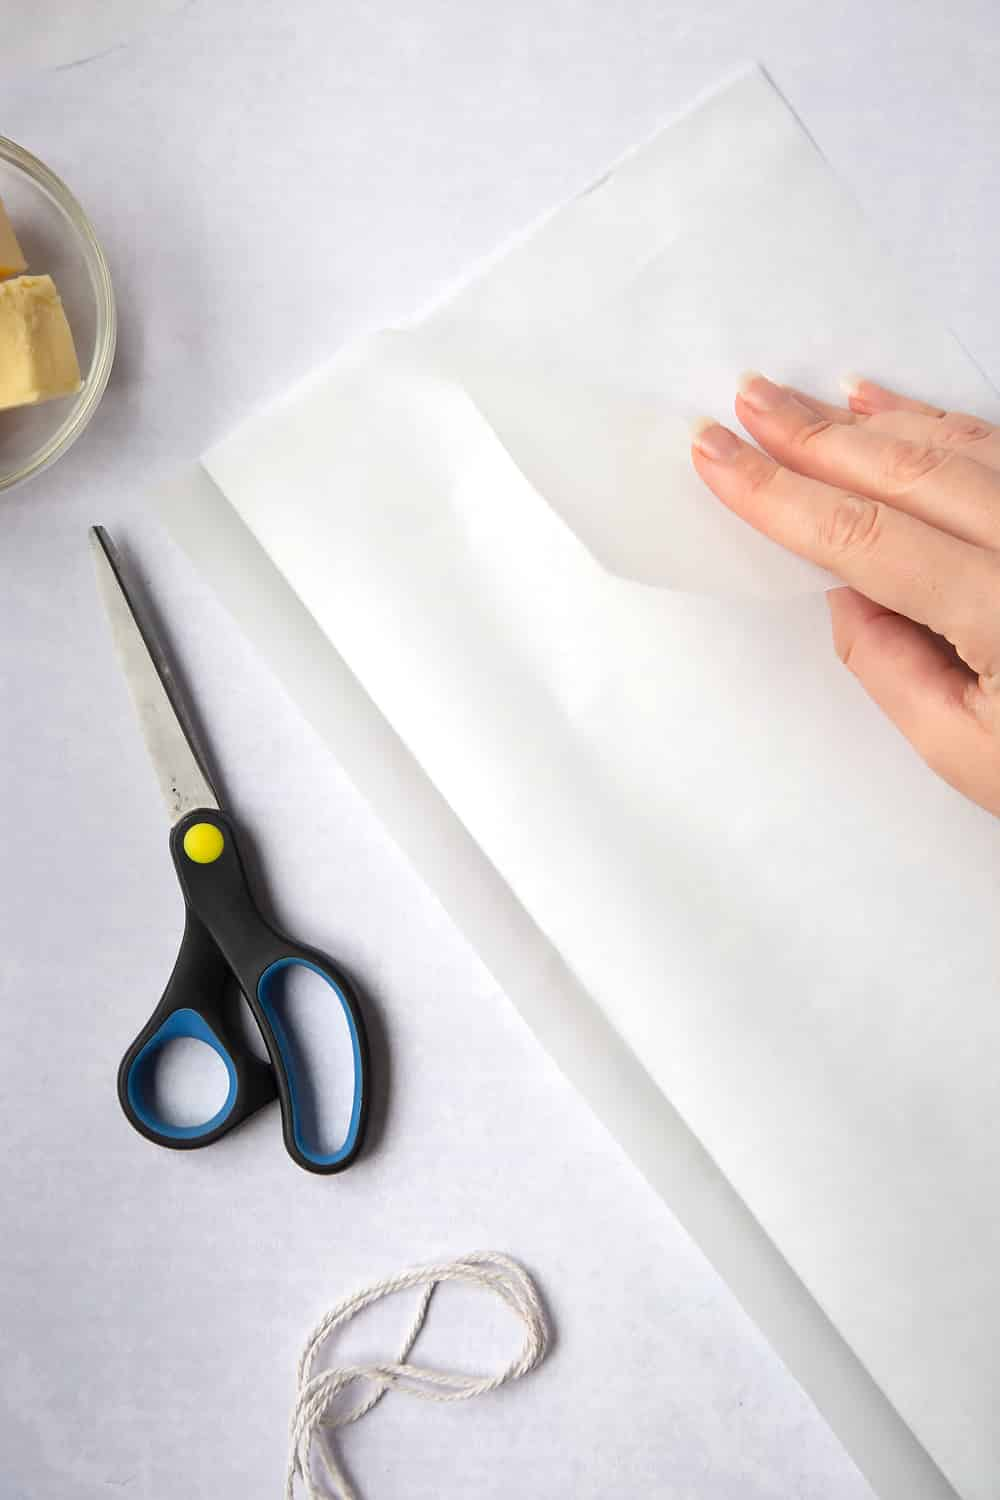 Folding the paper along its length to double the thickness of the strip. Scissors and string have been left to the side to decorate the image.